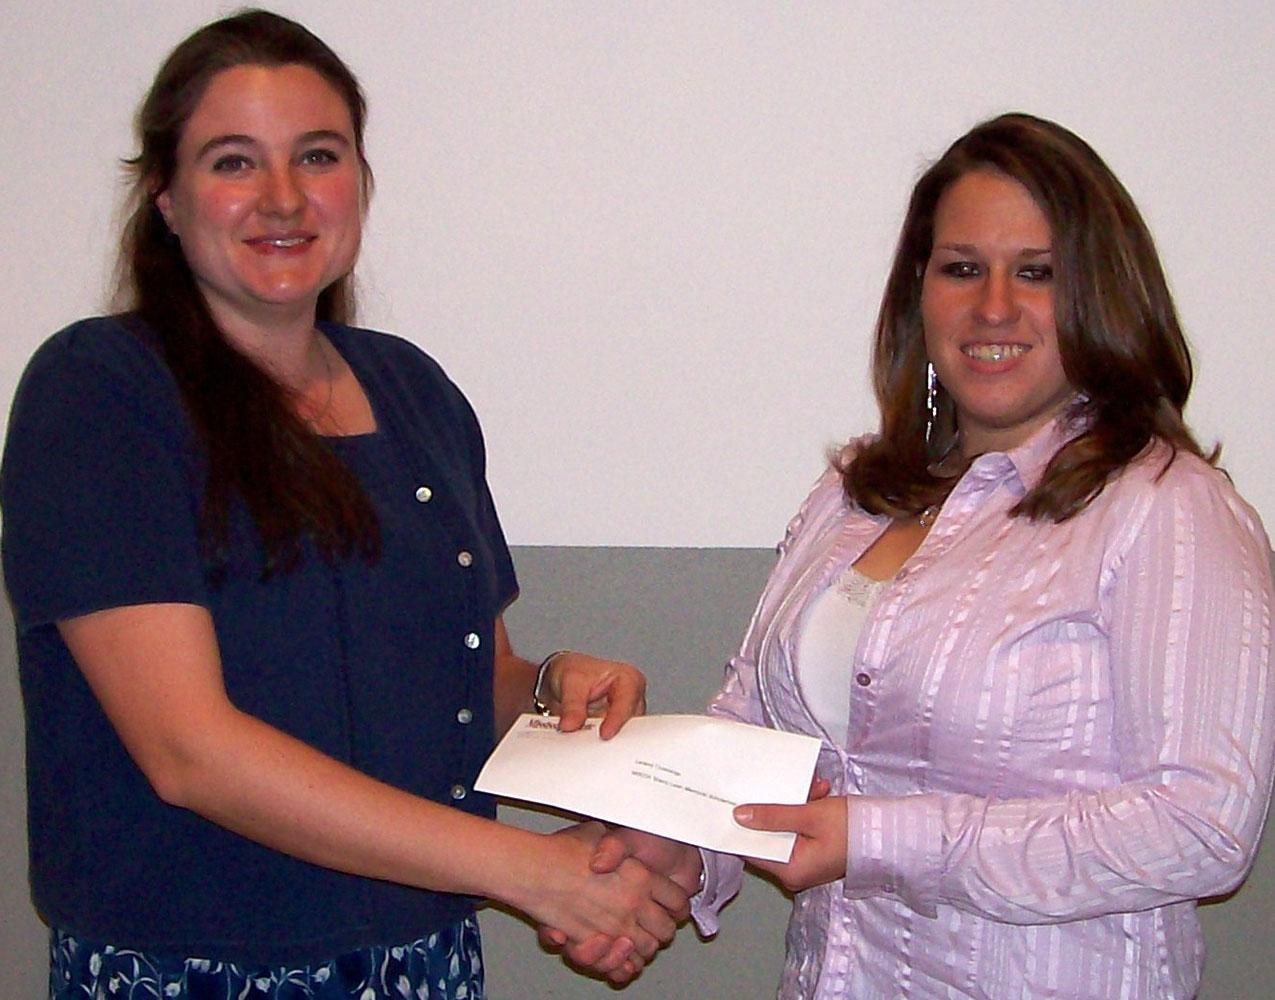 Laramy Cummings, right, is presented the Mississippi Eventing and Dressage Association/Sherry Levin Memorial Scholarship. Jenna Schilling, MEDA membership coordinator, presented the award. (Photo by Wes Schilling/MSU)